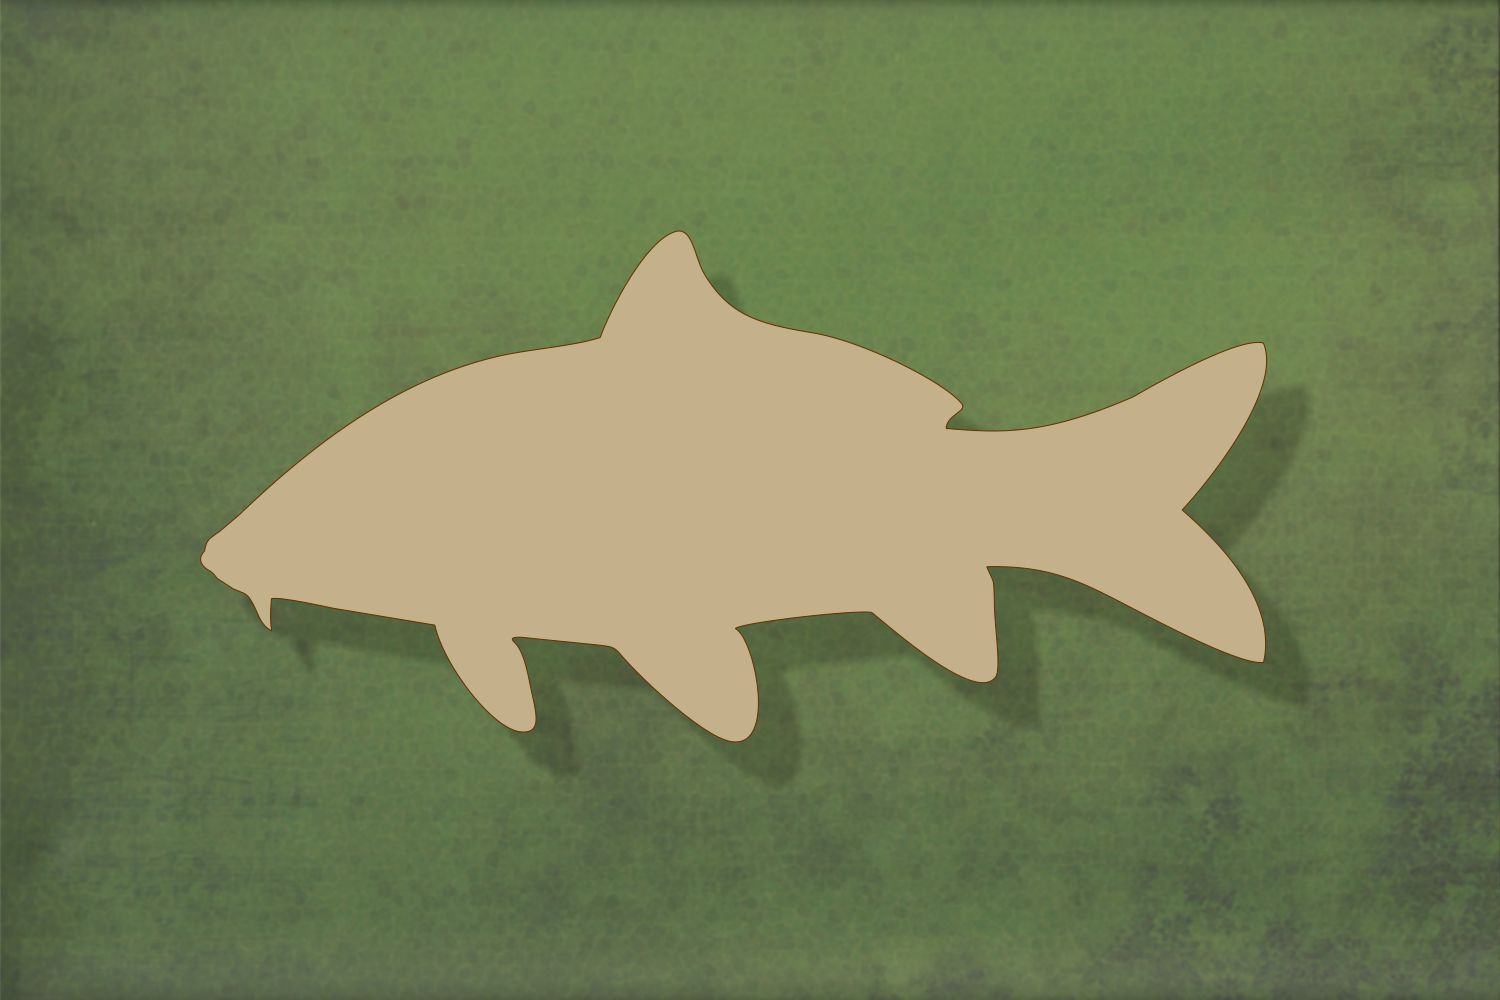 Laser cut, blank wooden Fish carp shape for craft